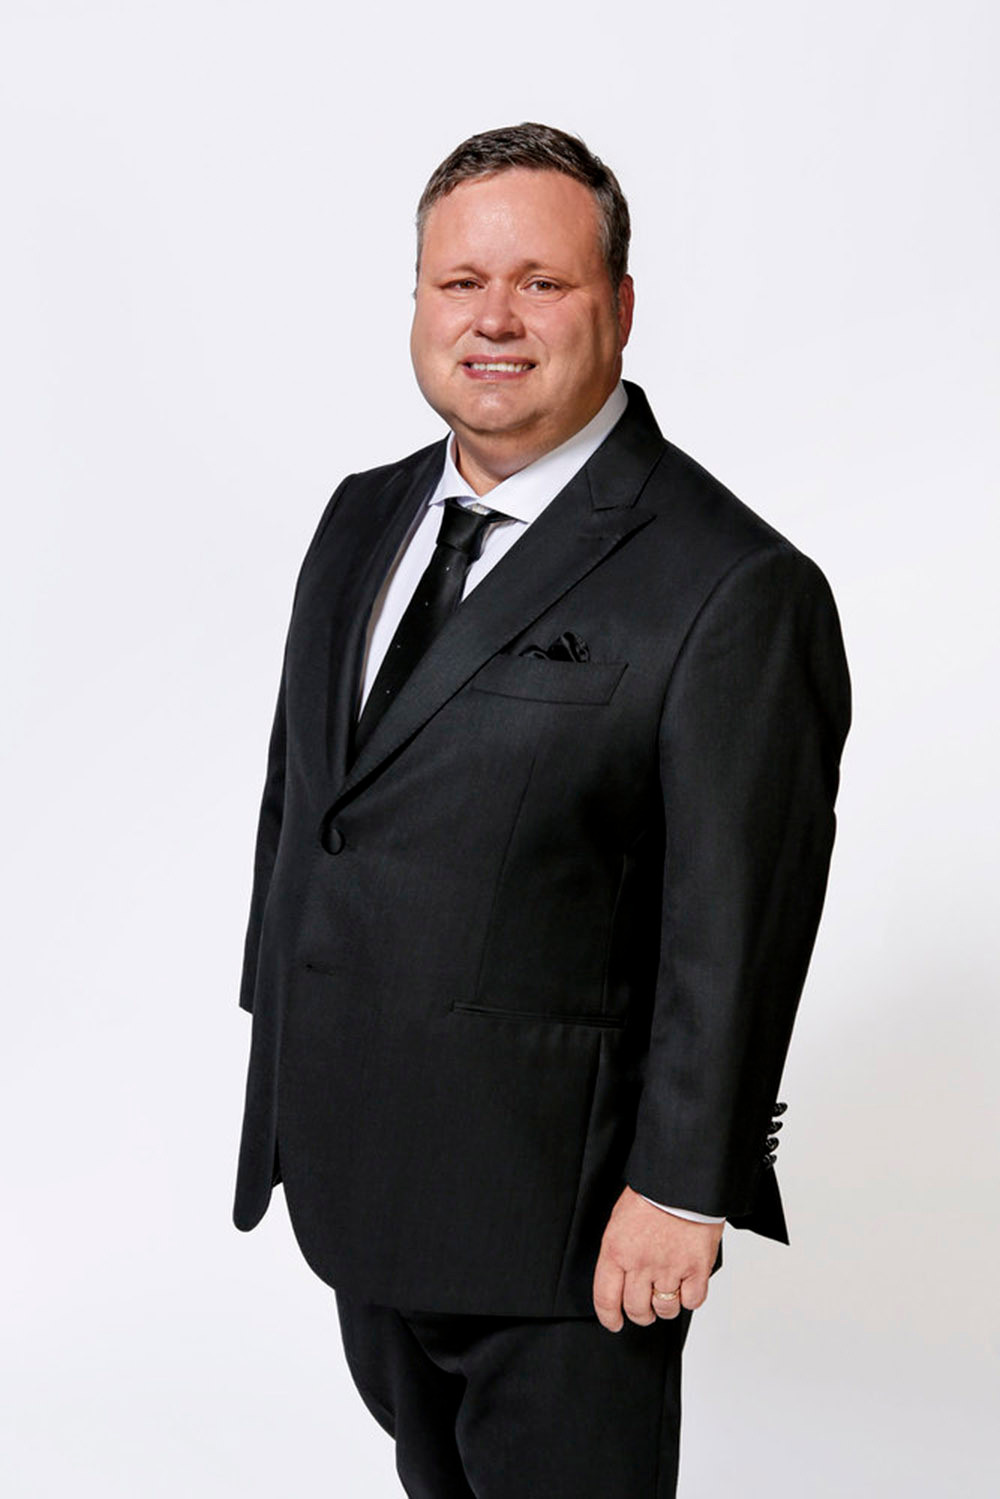 Paul Potts won BGT in 2007